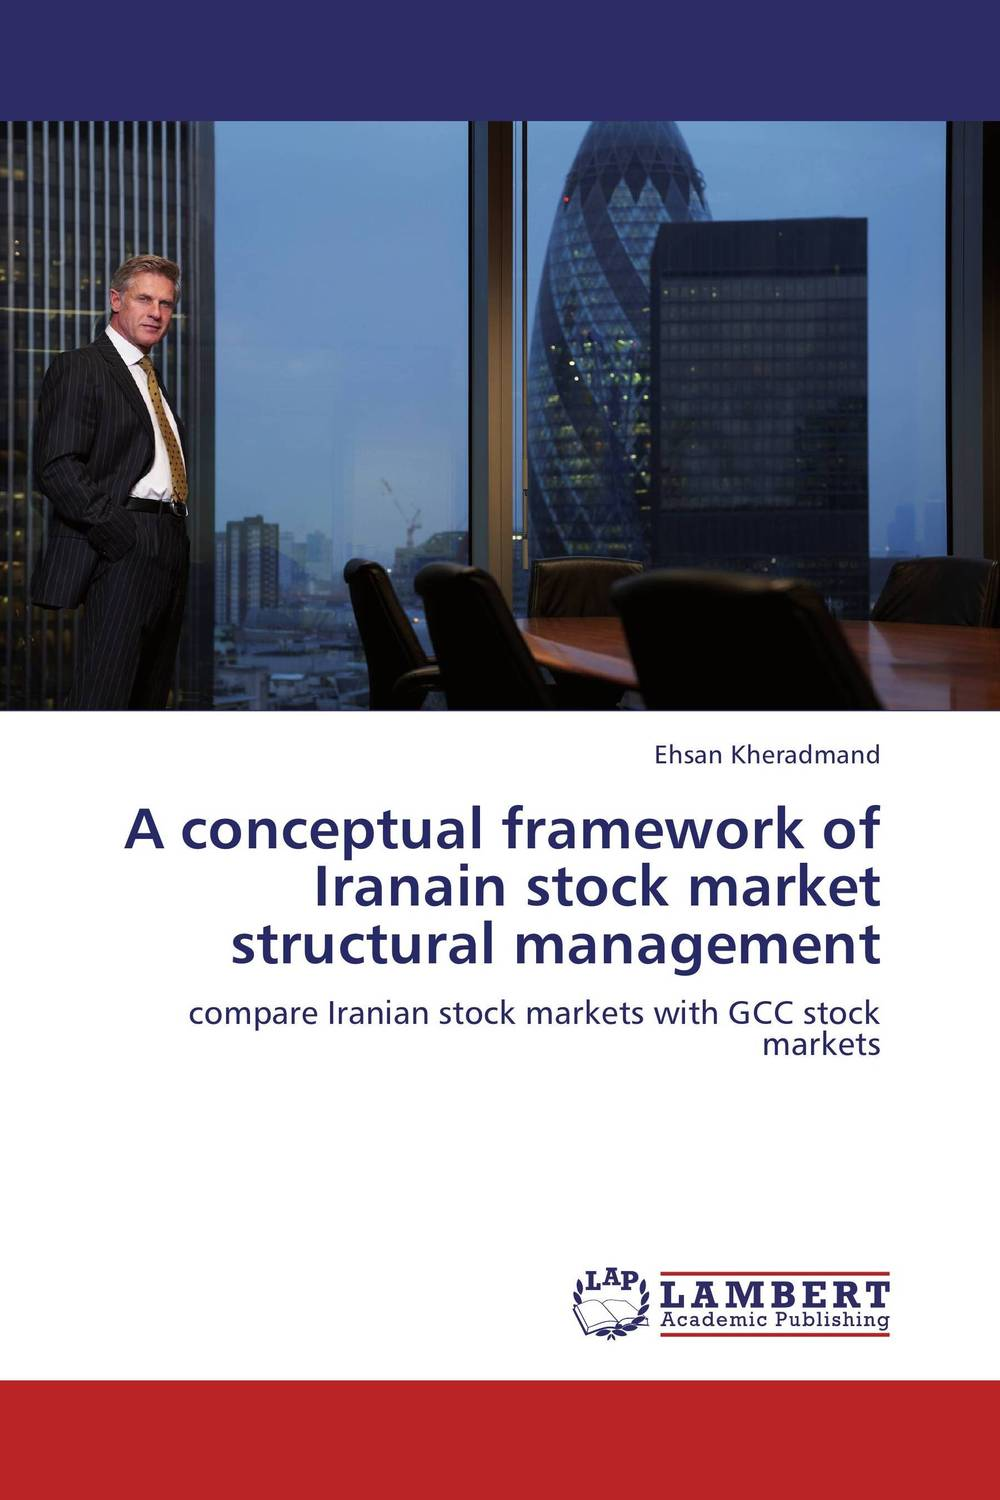 A conceptual framework of Iranain stock market structural management